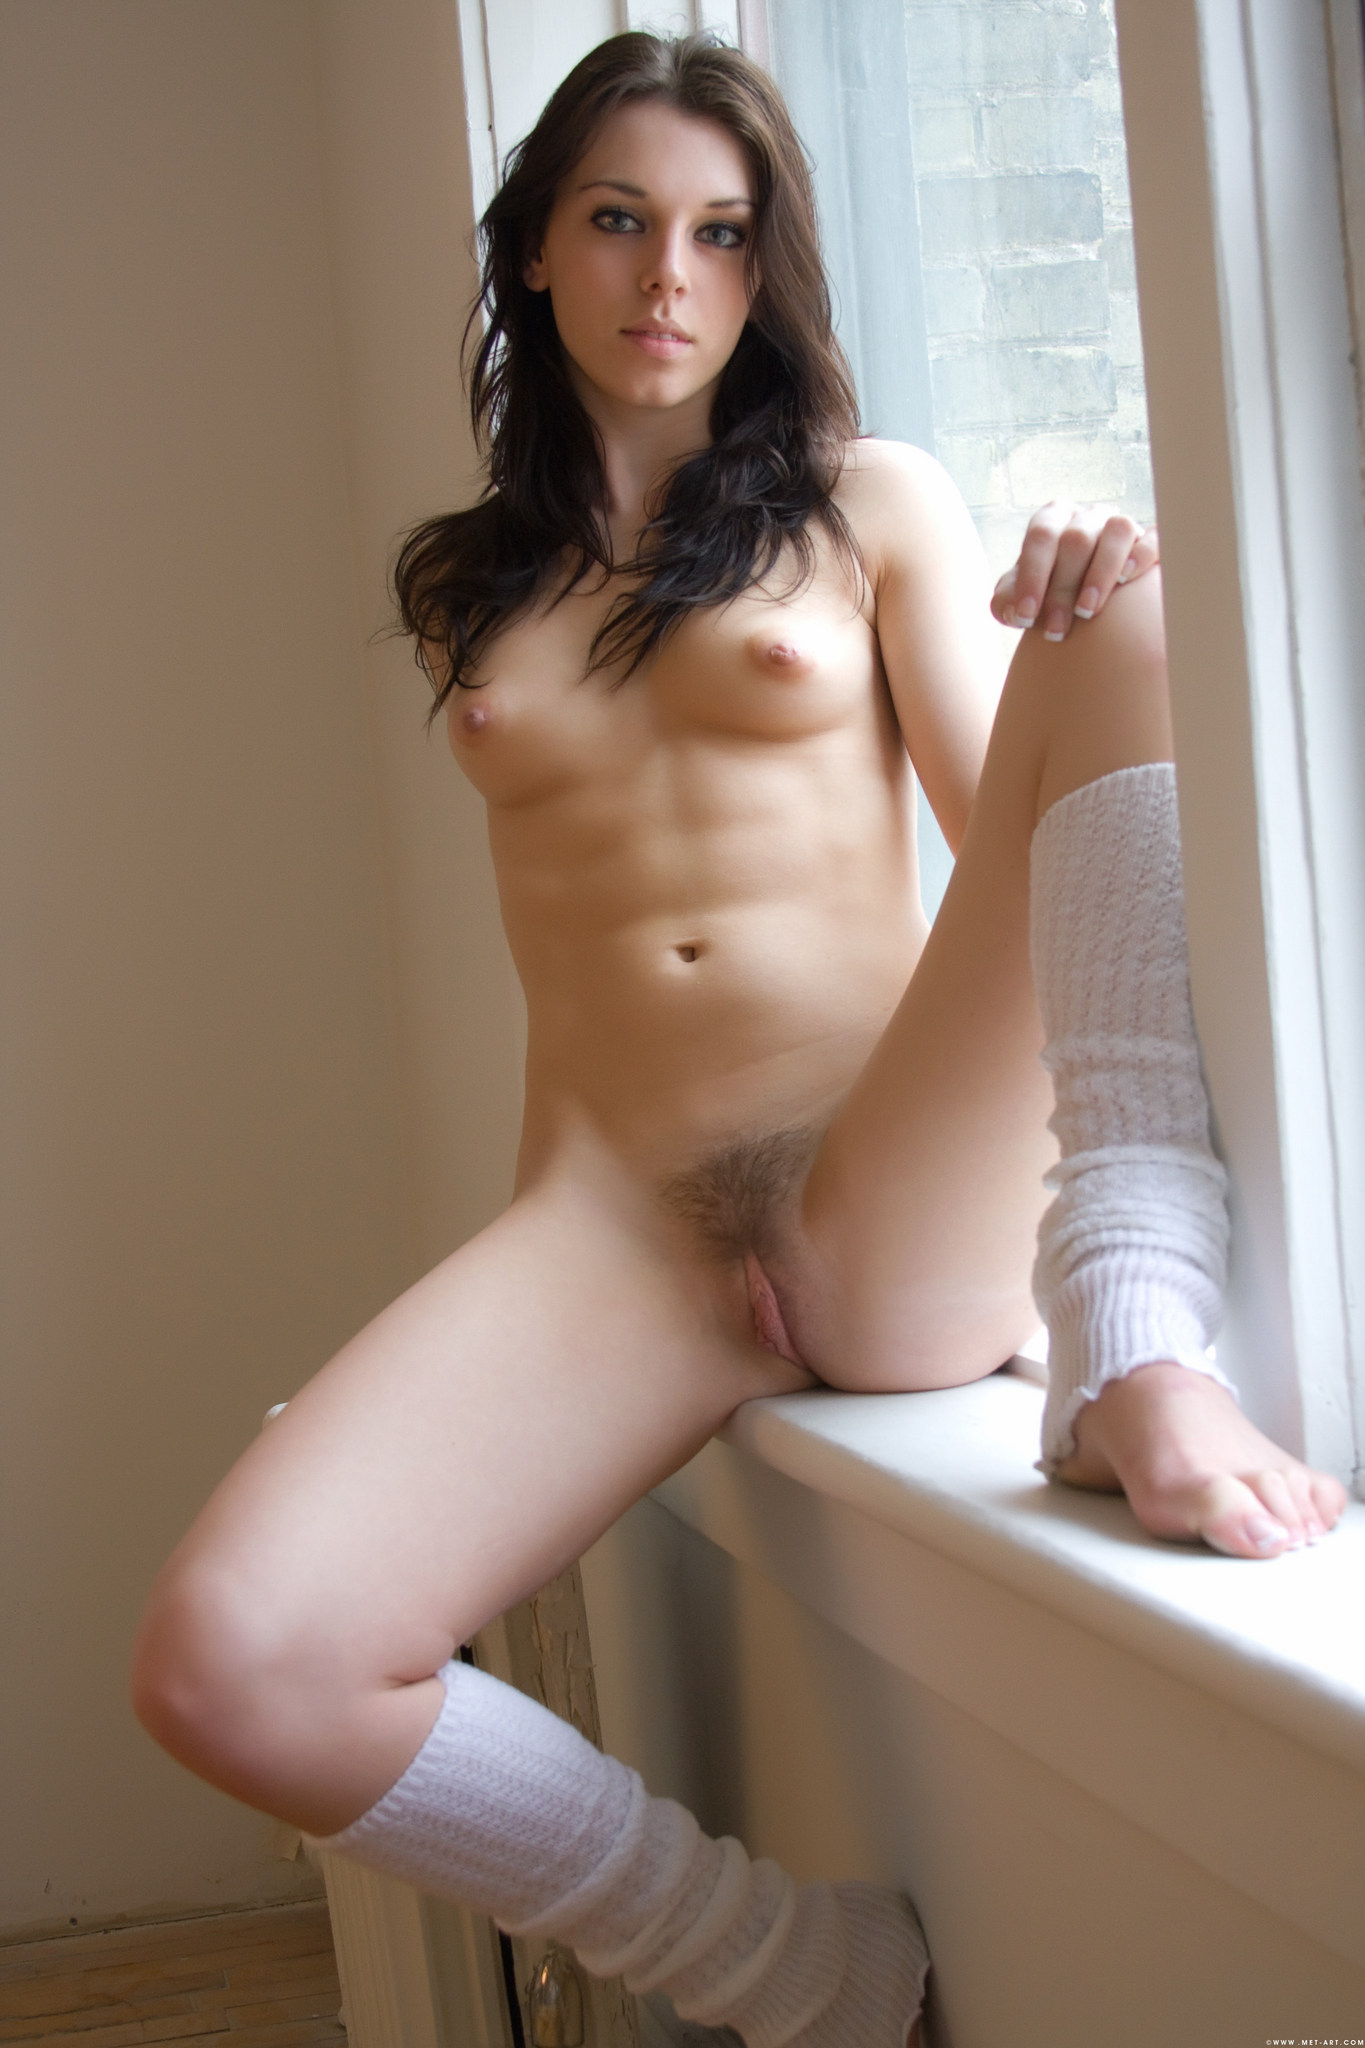 Amateur girl with strap on